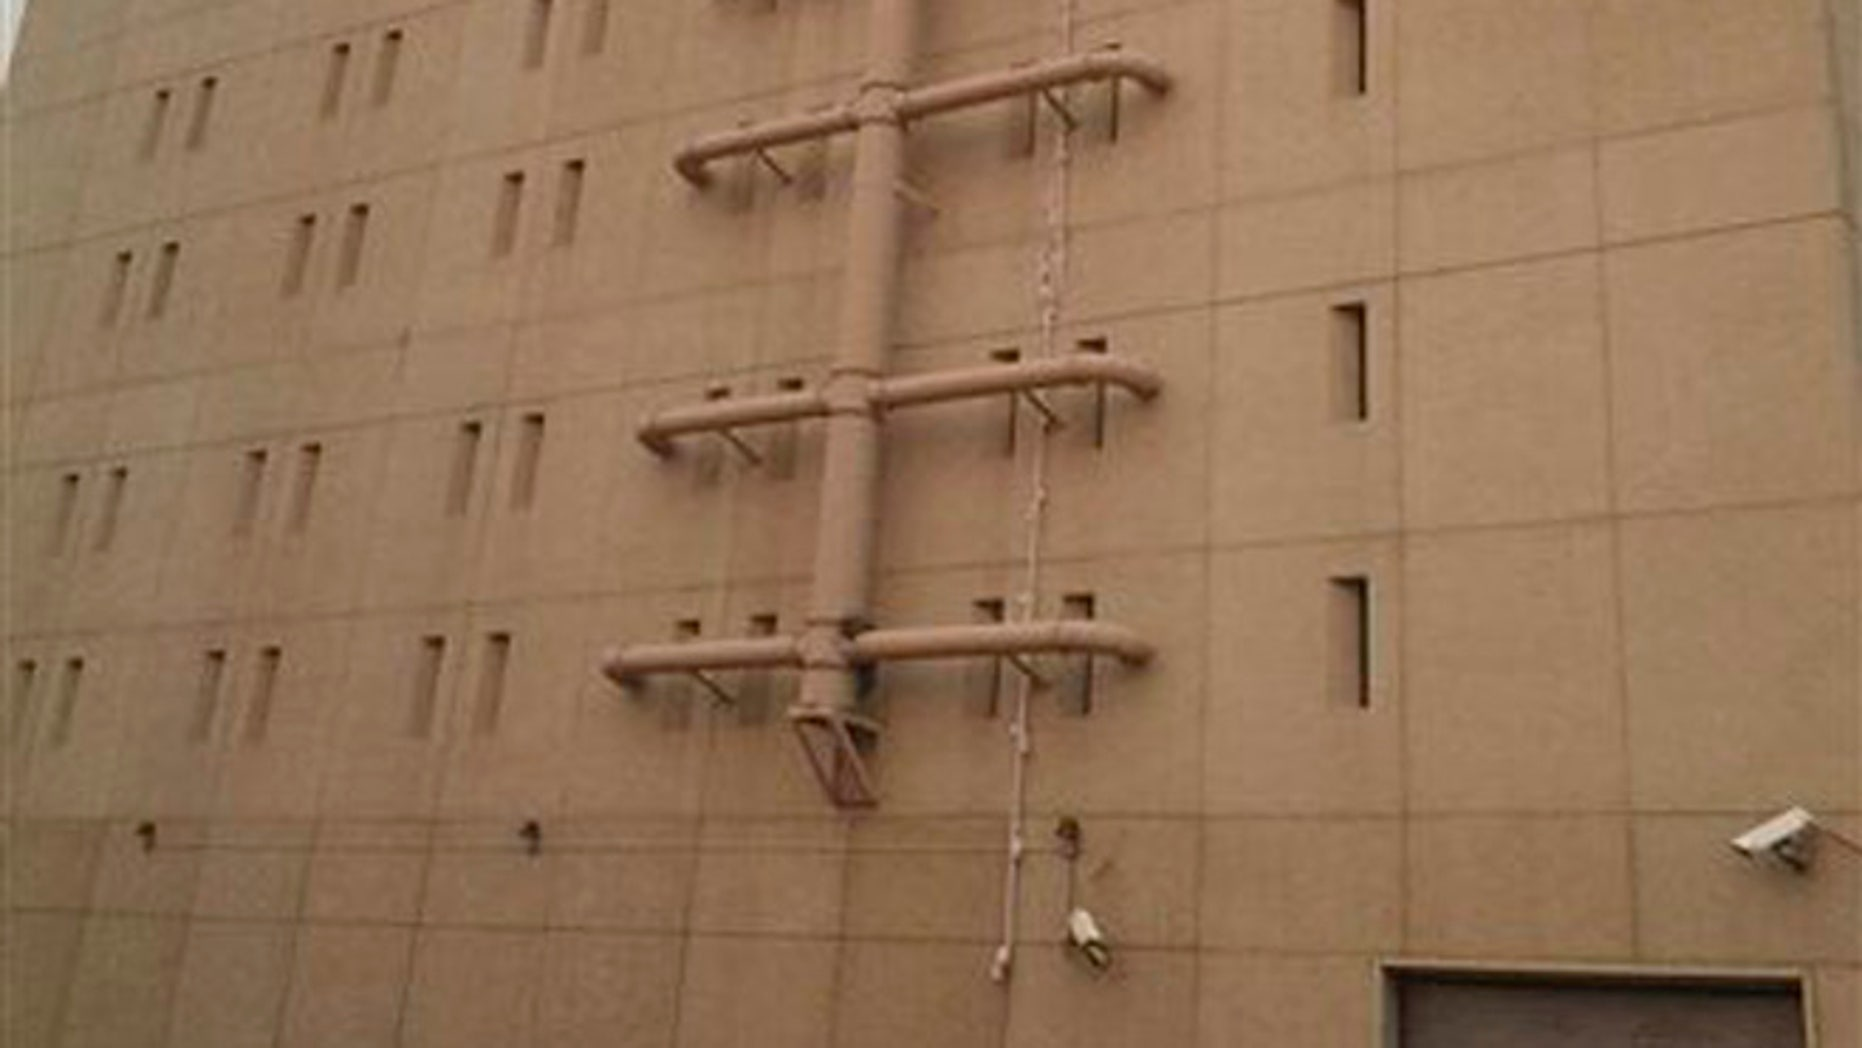 Aug. 20, 2015: In this image made from video taken, bed sheets used in an apparent escape attempt are seen hanging from a top floor window of the Spokane County Jail reaching all the way to the ground in Spokane, Wash.